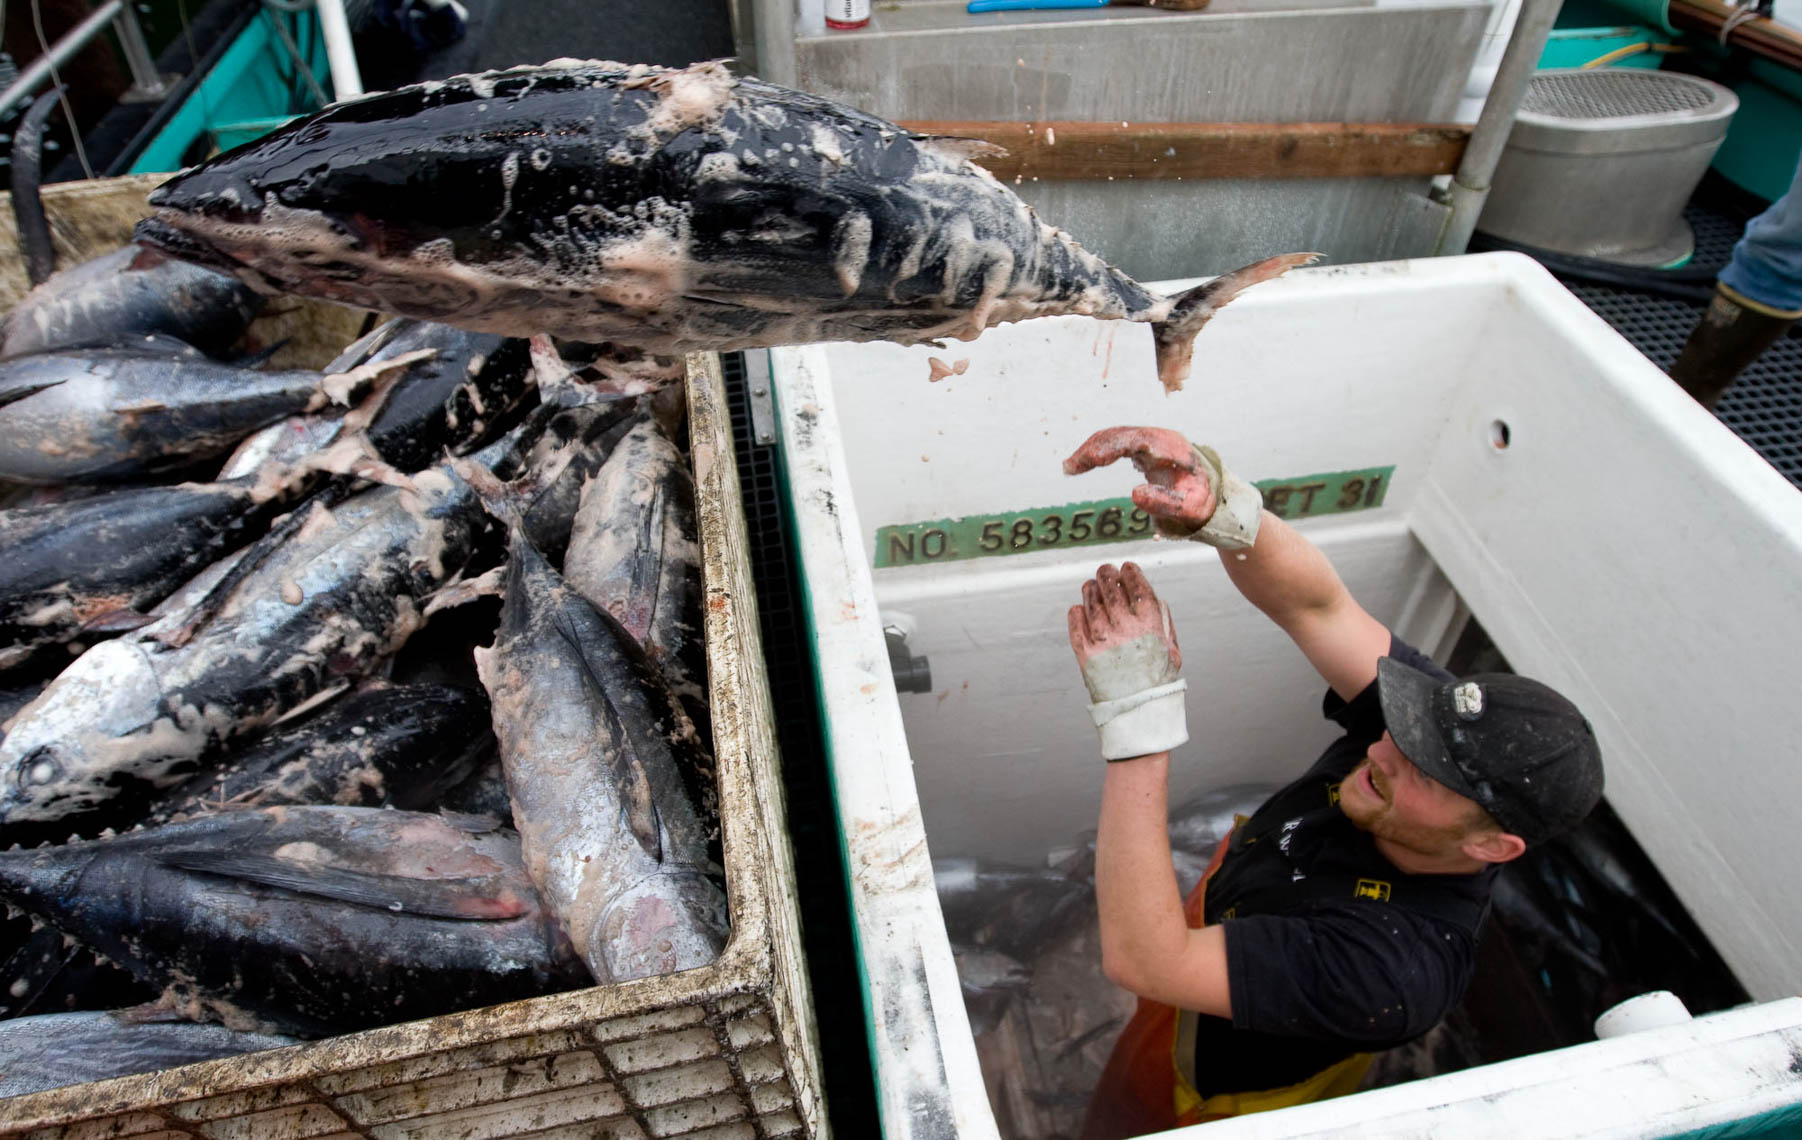 Crewman Removes Frozen Albacore from Hold